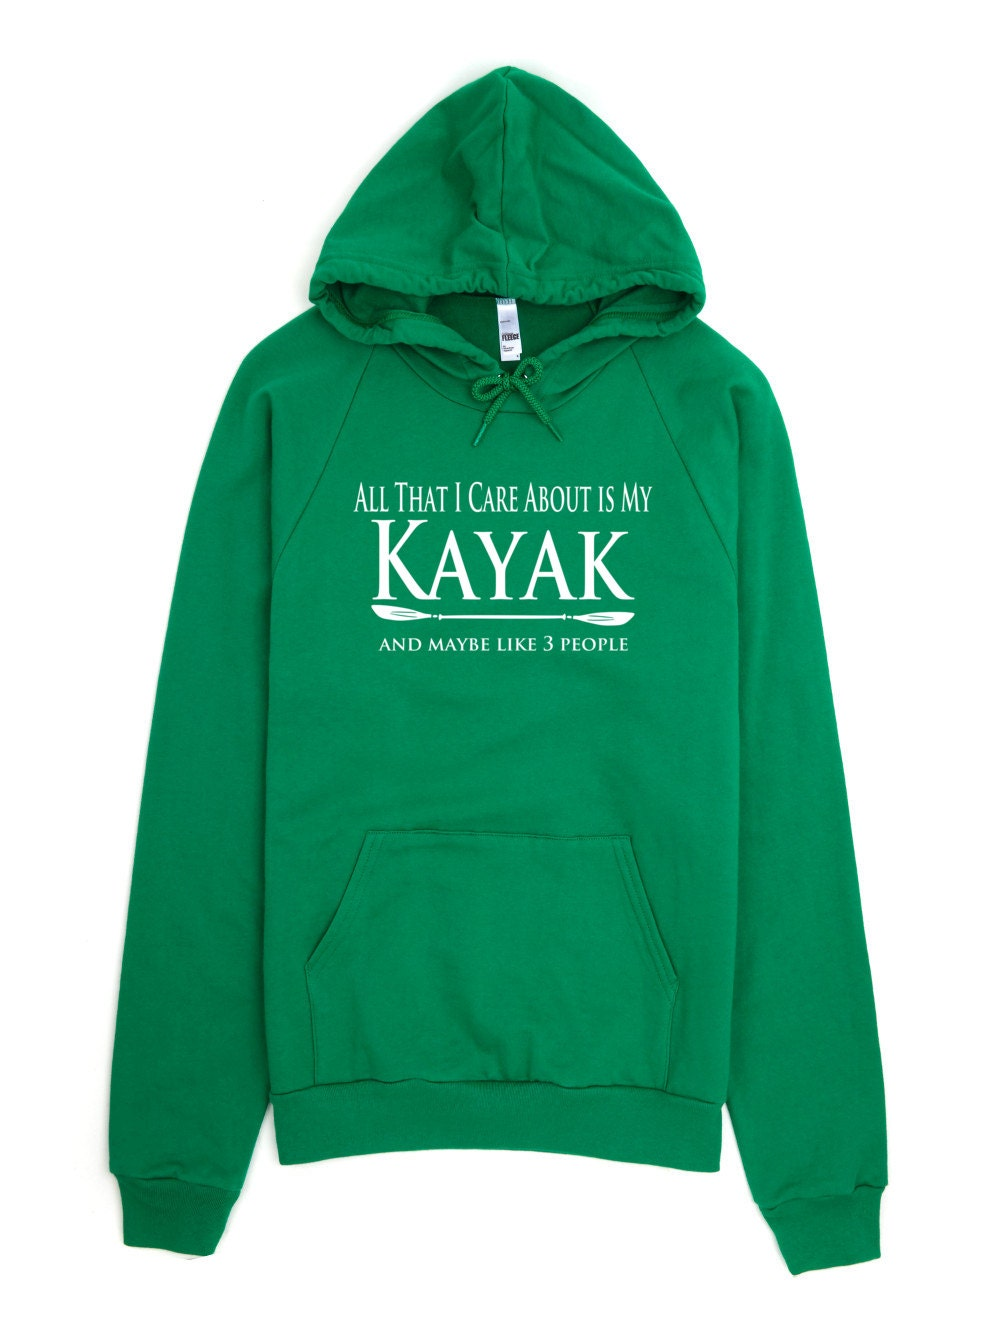 Kayak Sweatshirt - All That I Care About Is My Kayak And Maybe Like Three People - Paddle Life Kayaking Hoodie